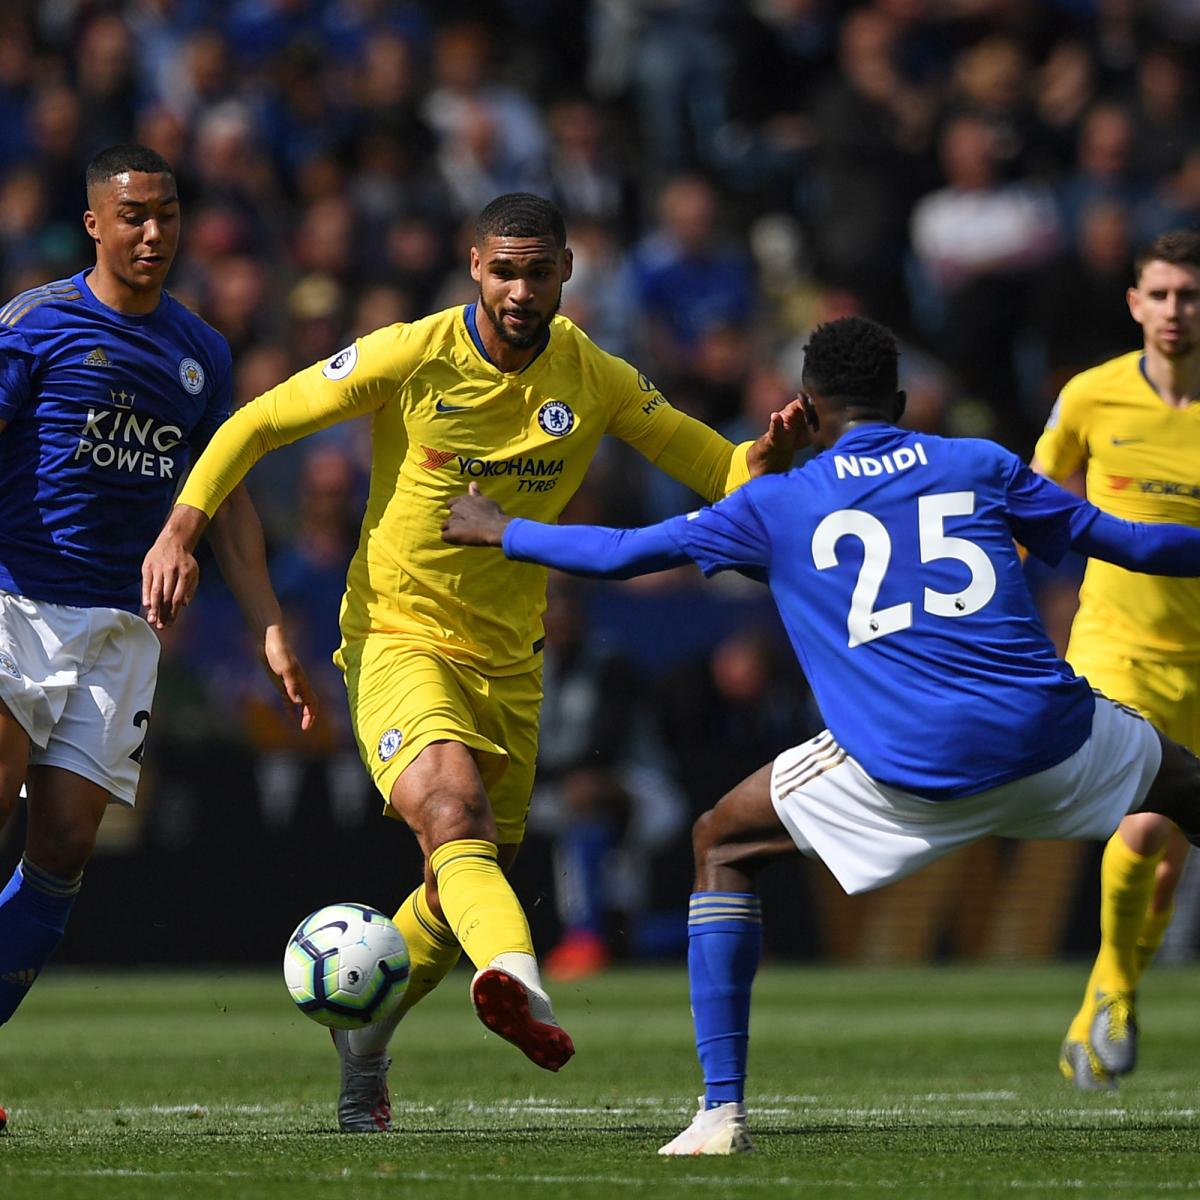 chelsea vs leicester city - HD 1200×800